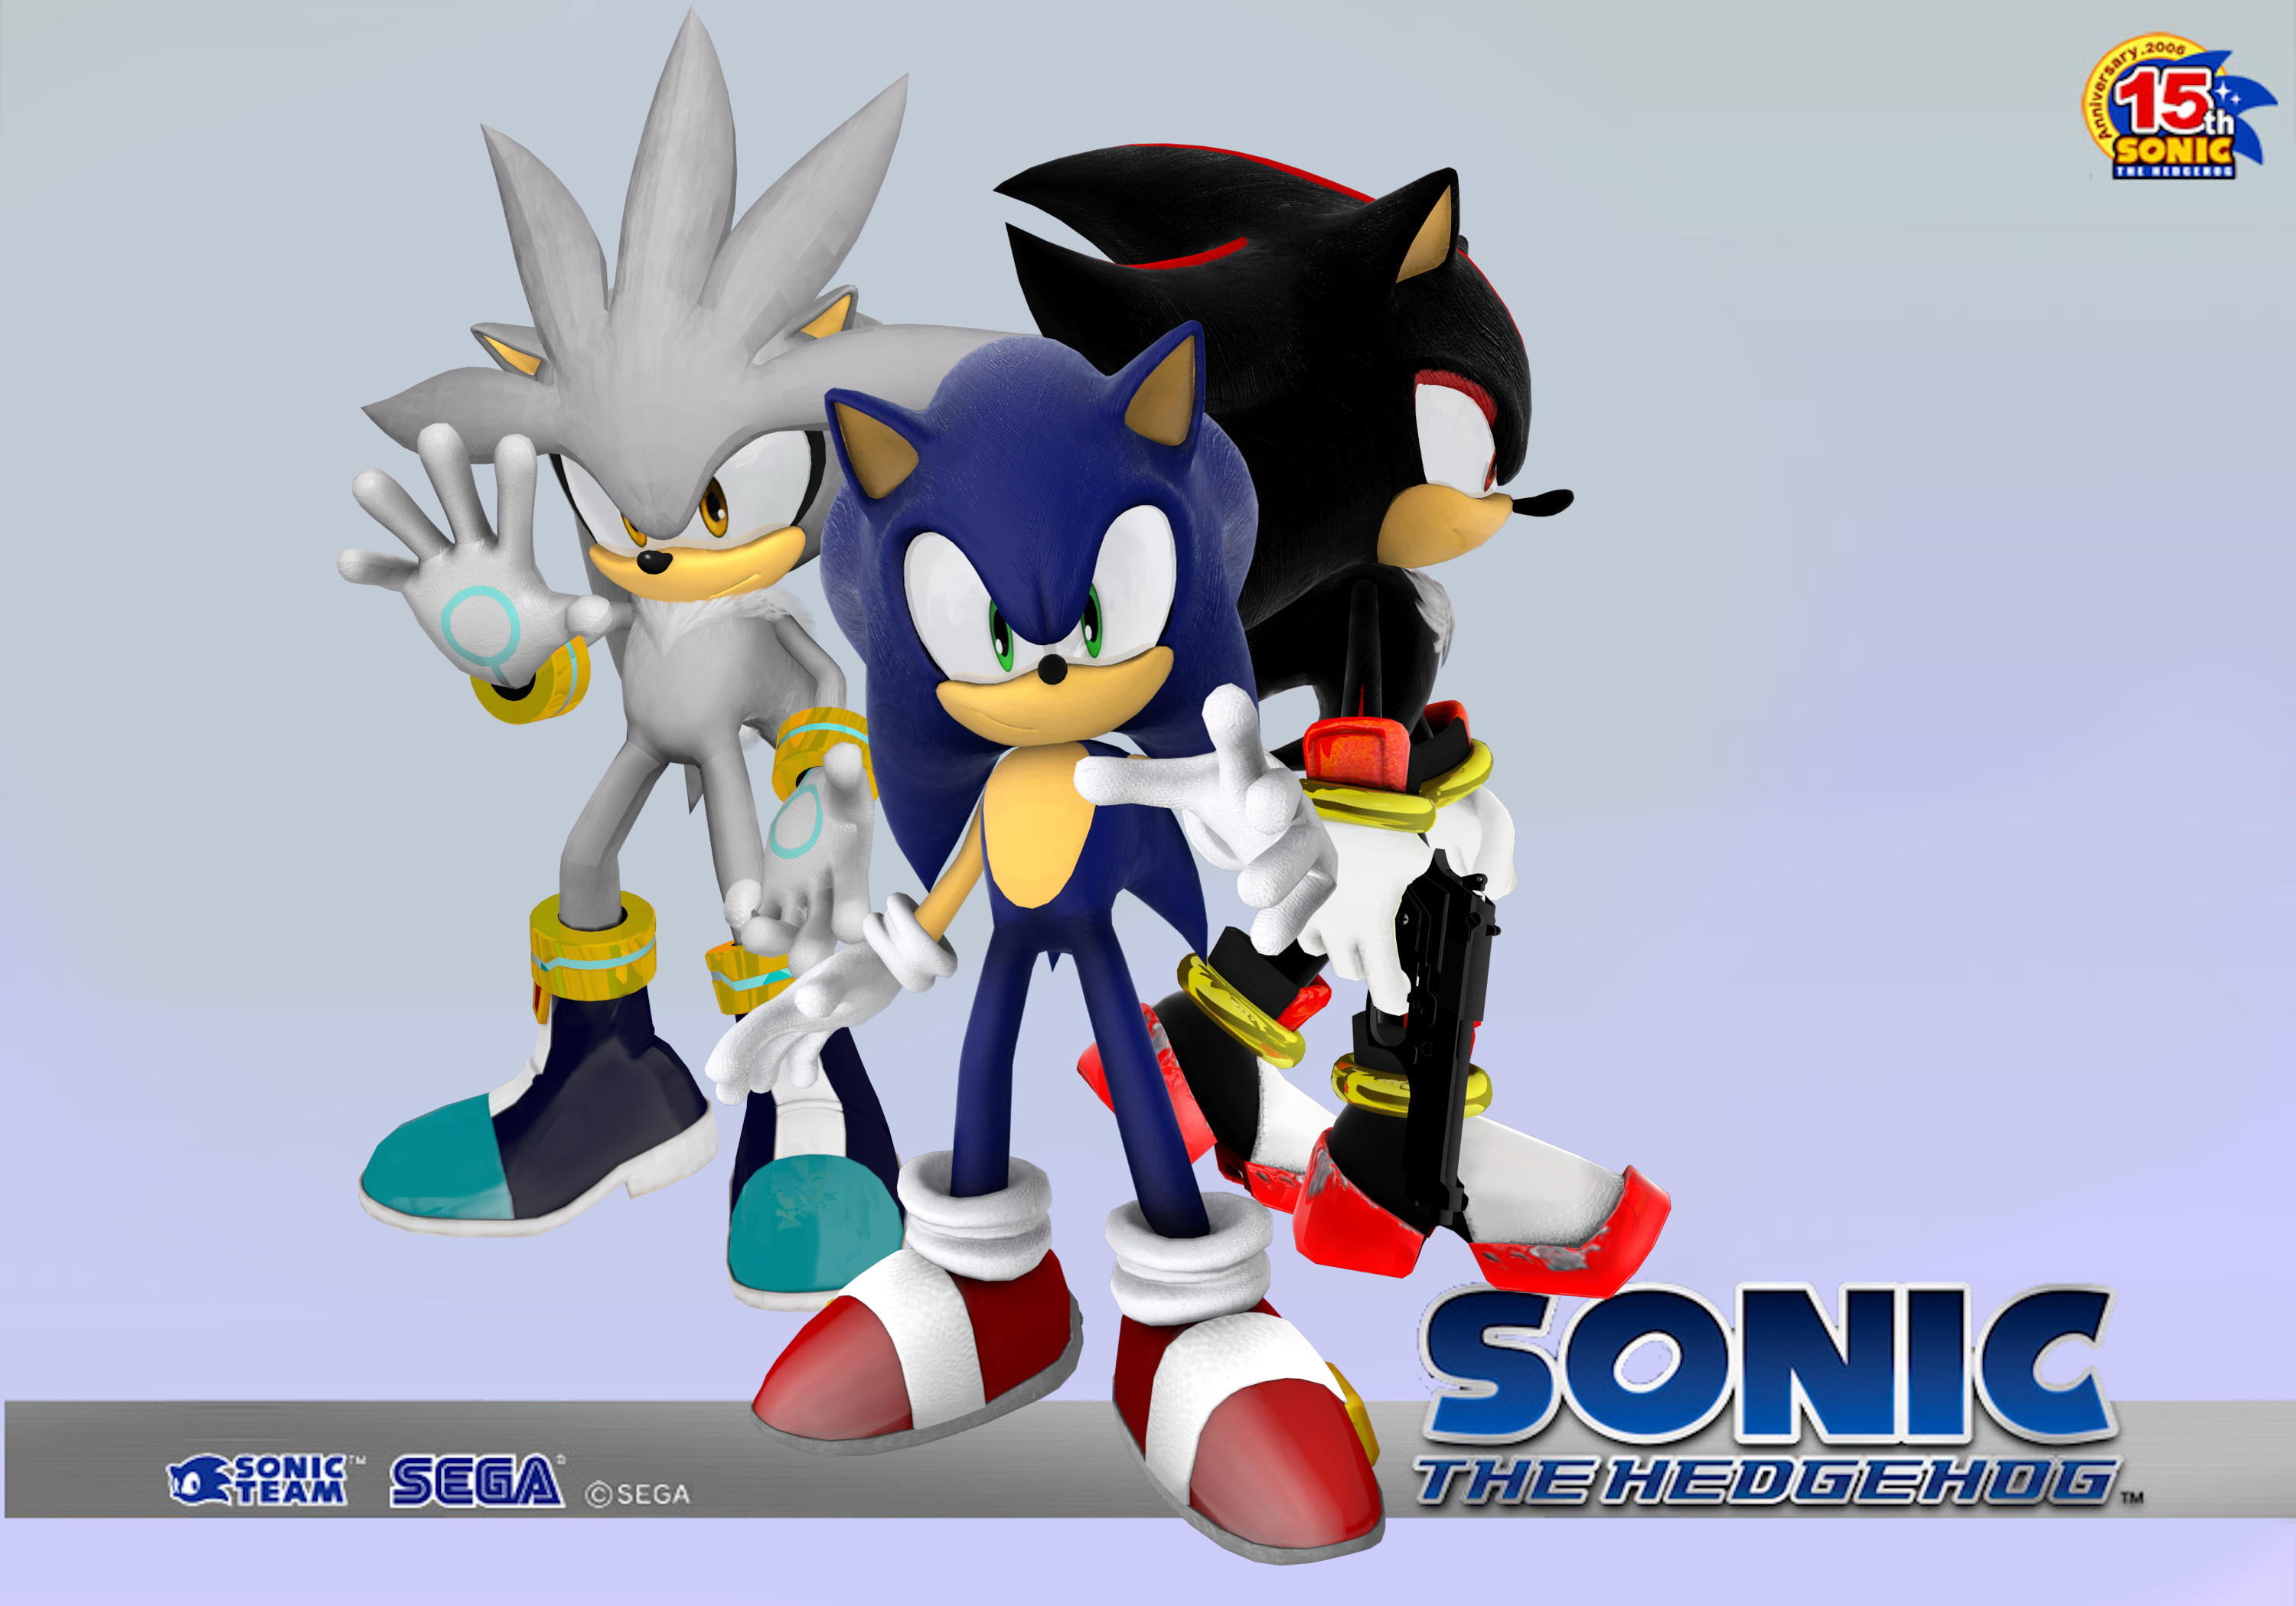 Sonic The Hedgehog Wallpaper 76 Images